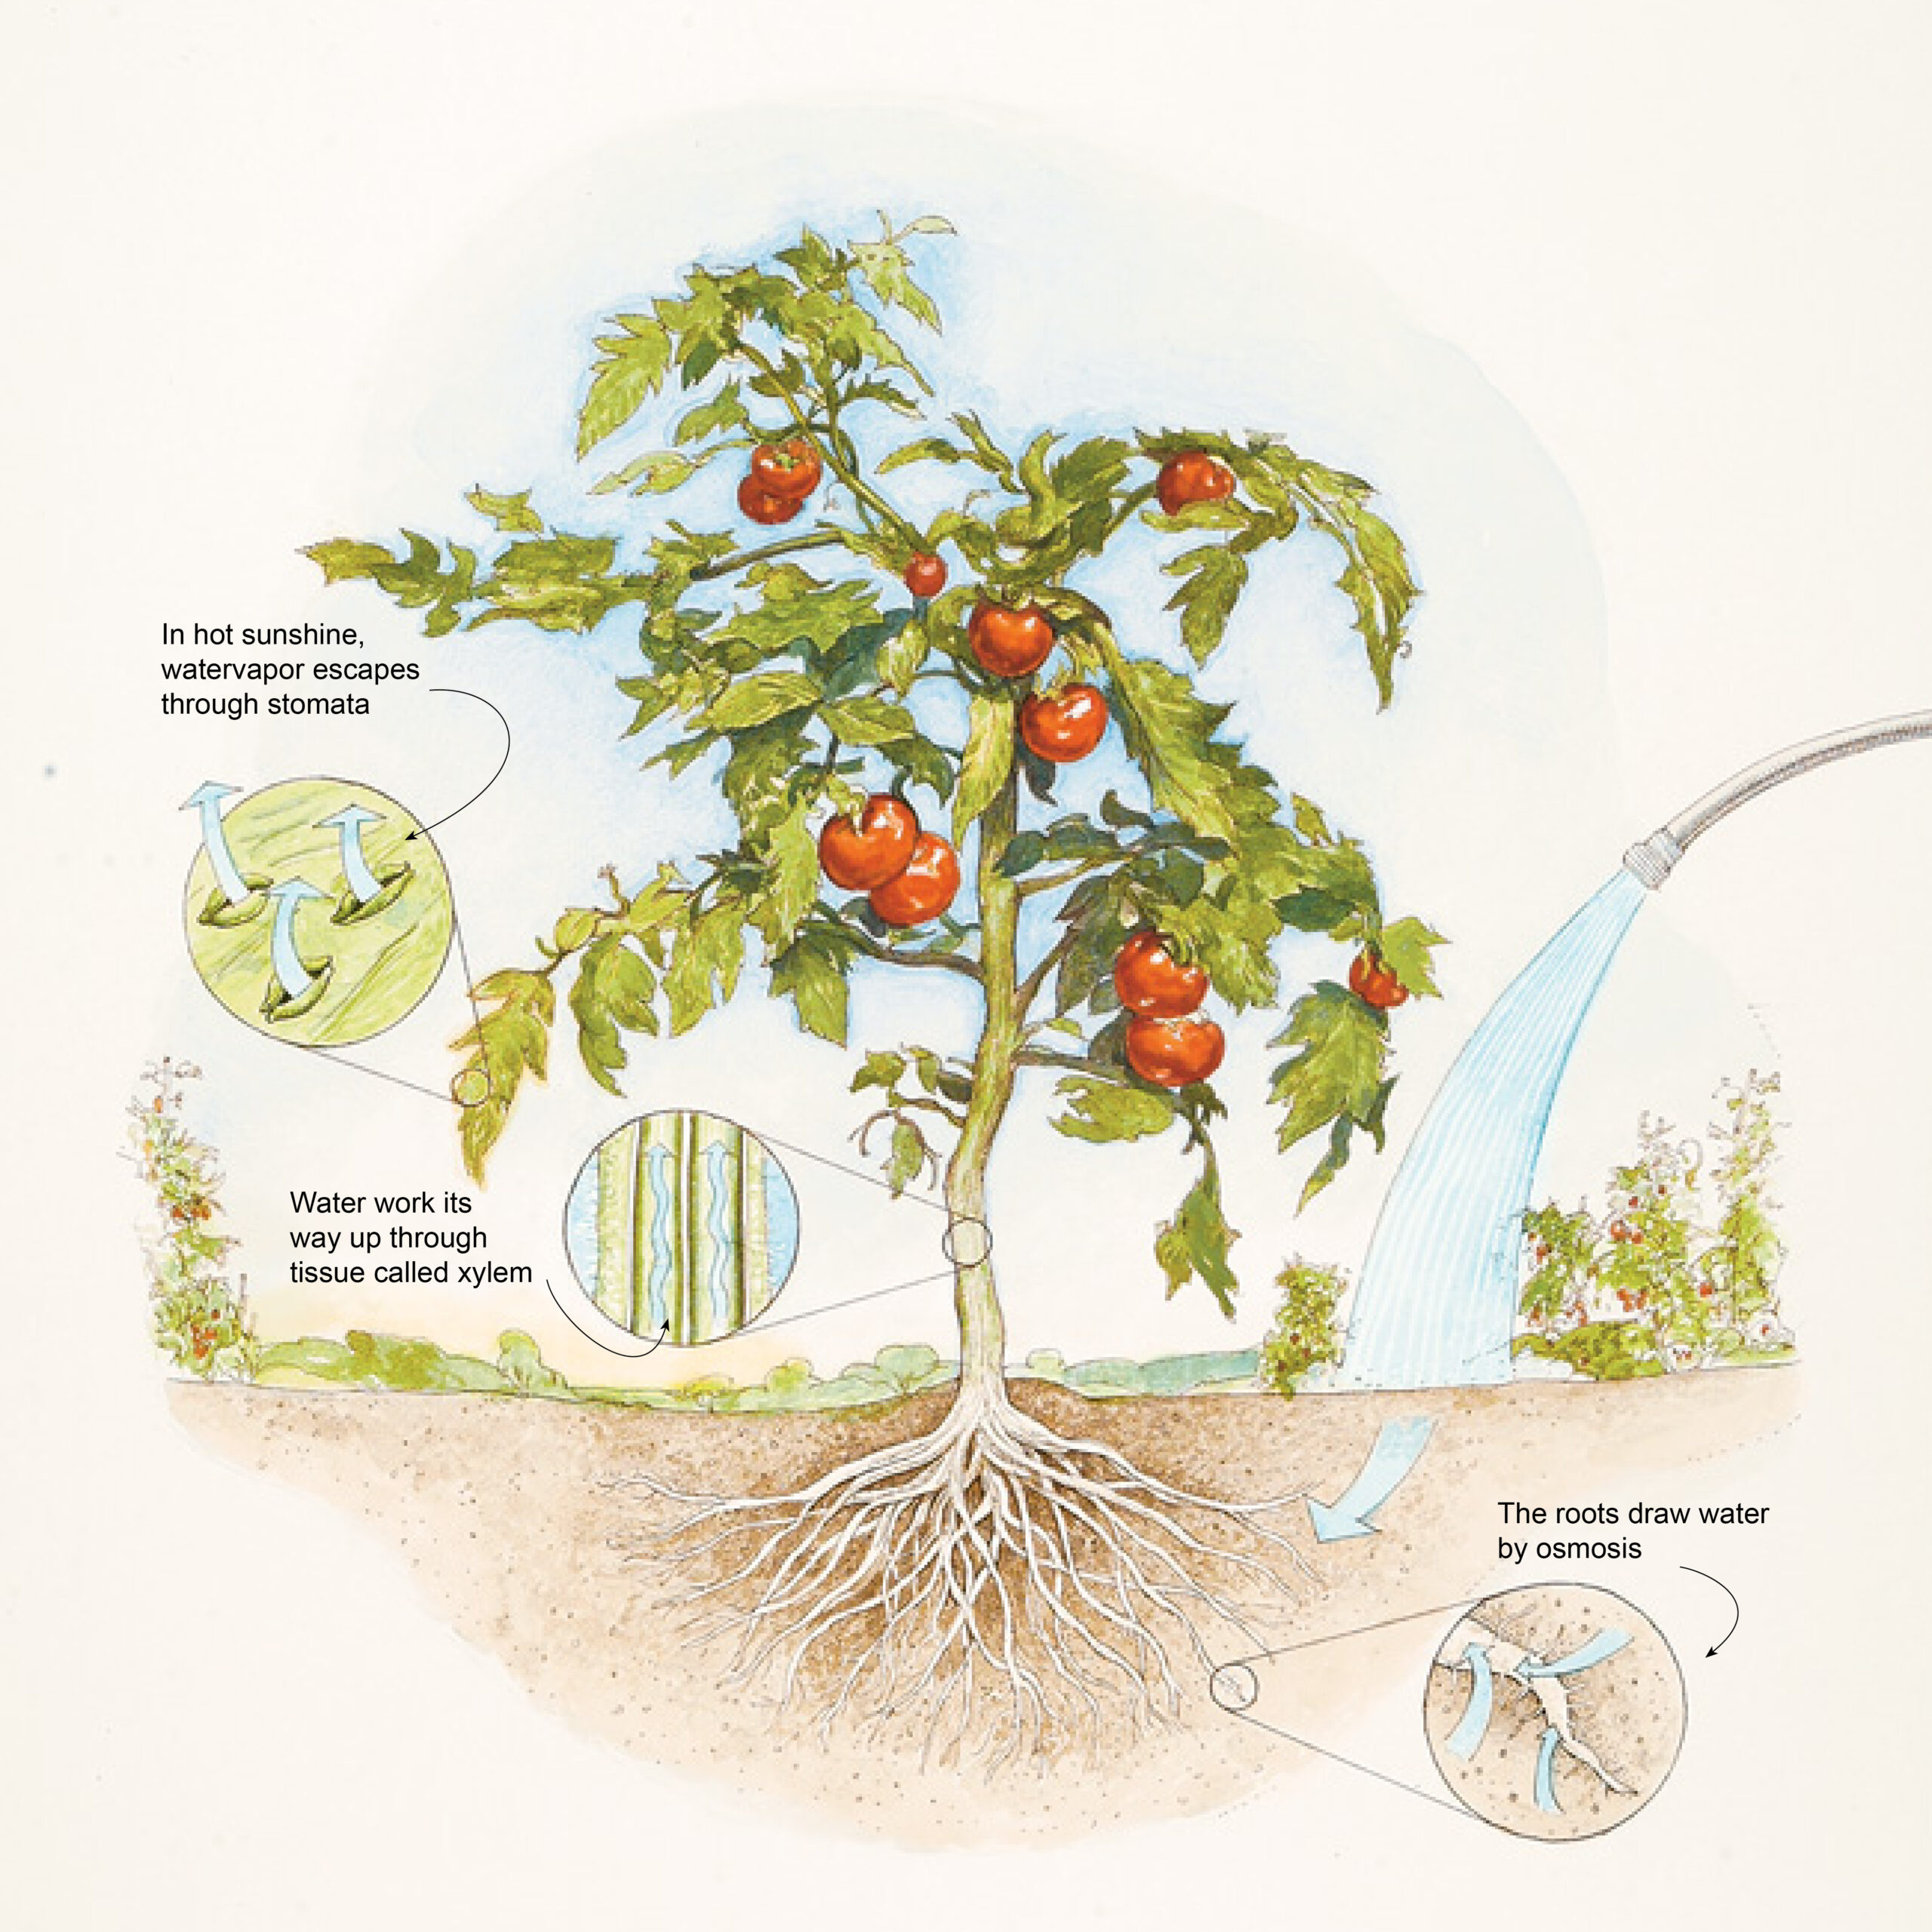 A diagram detailing water entering soil and plant roots via osmosis.